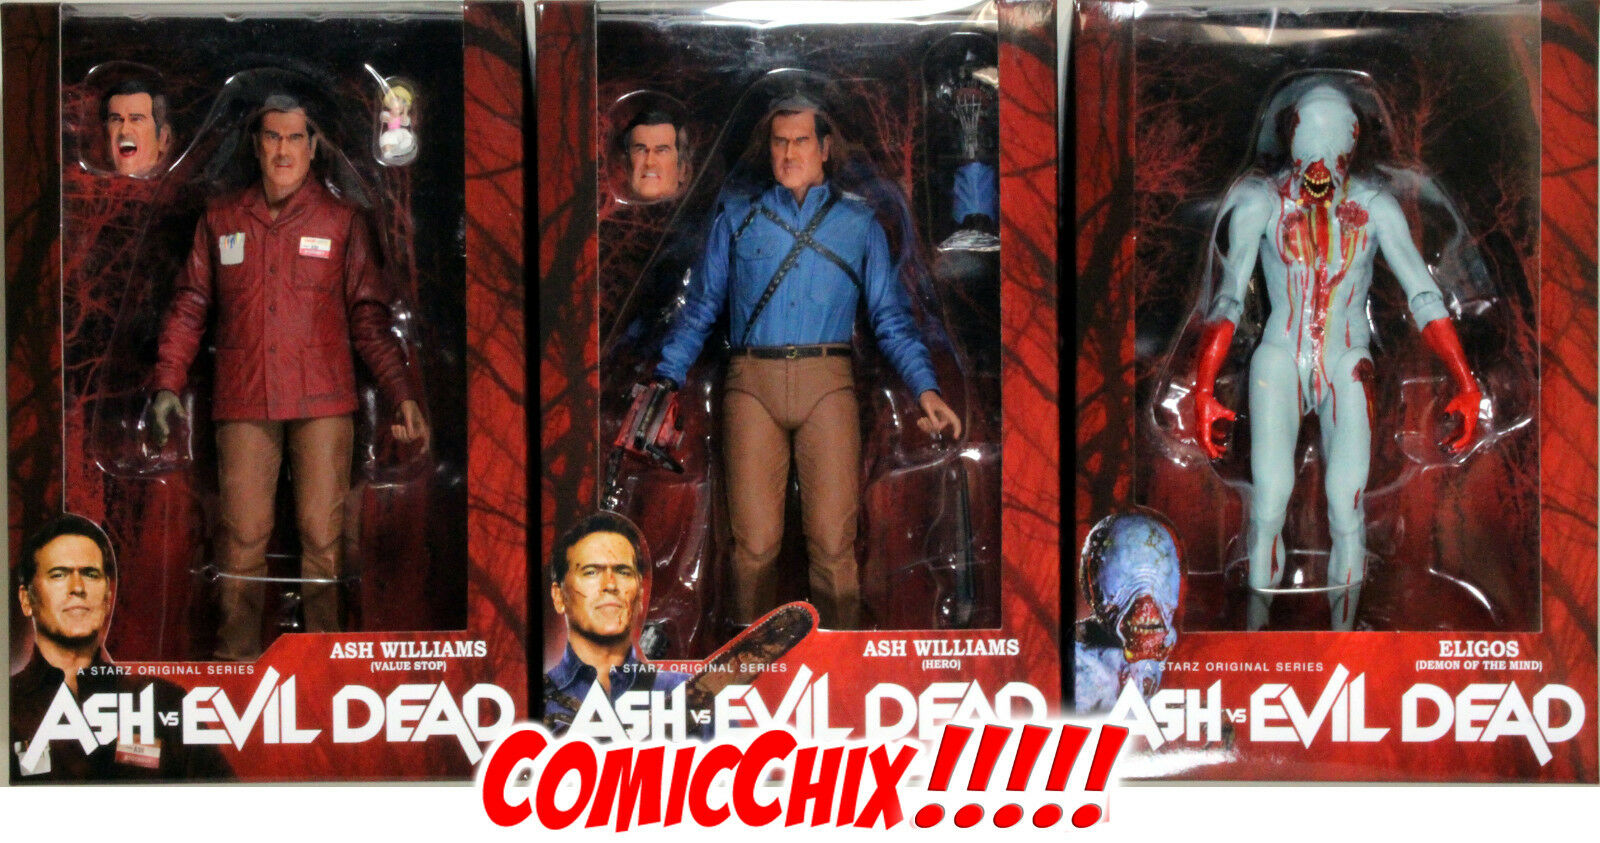 ASH vs. THE EVIL DEAD ACTION FIGURE SET - NECA